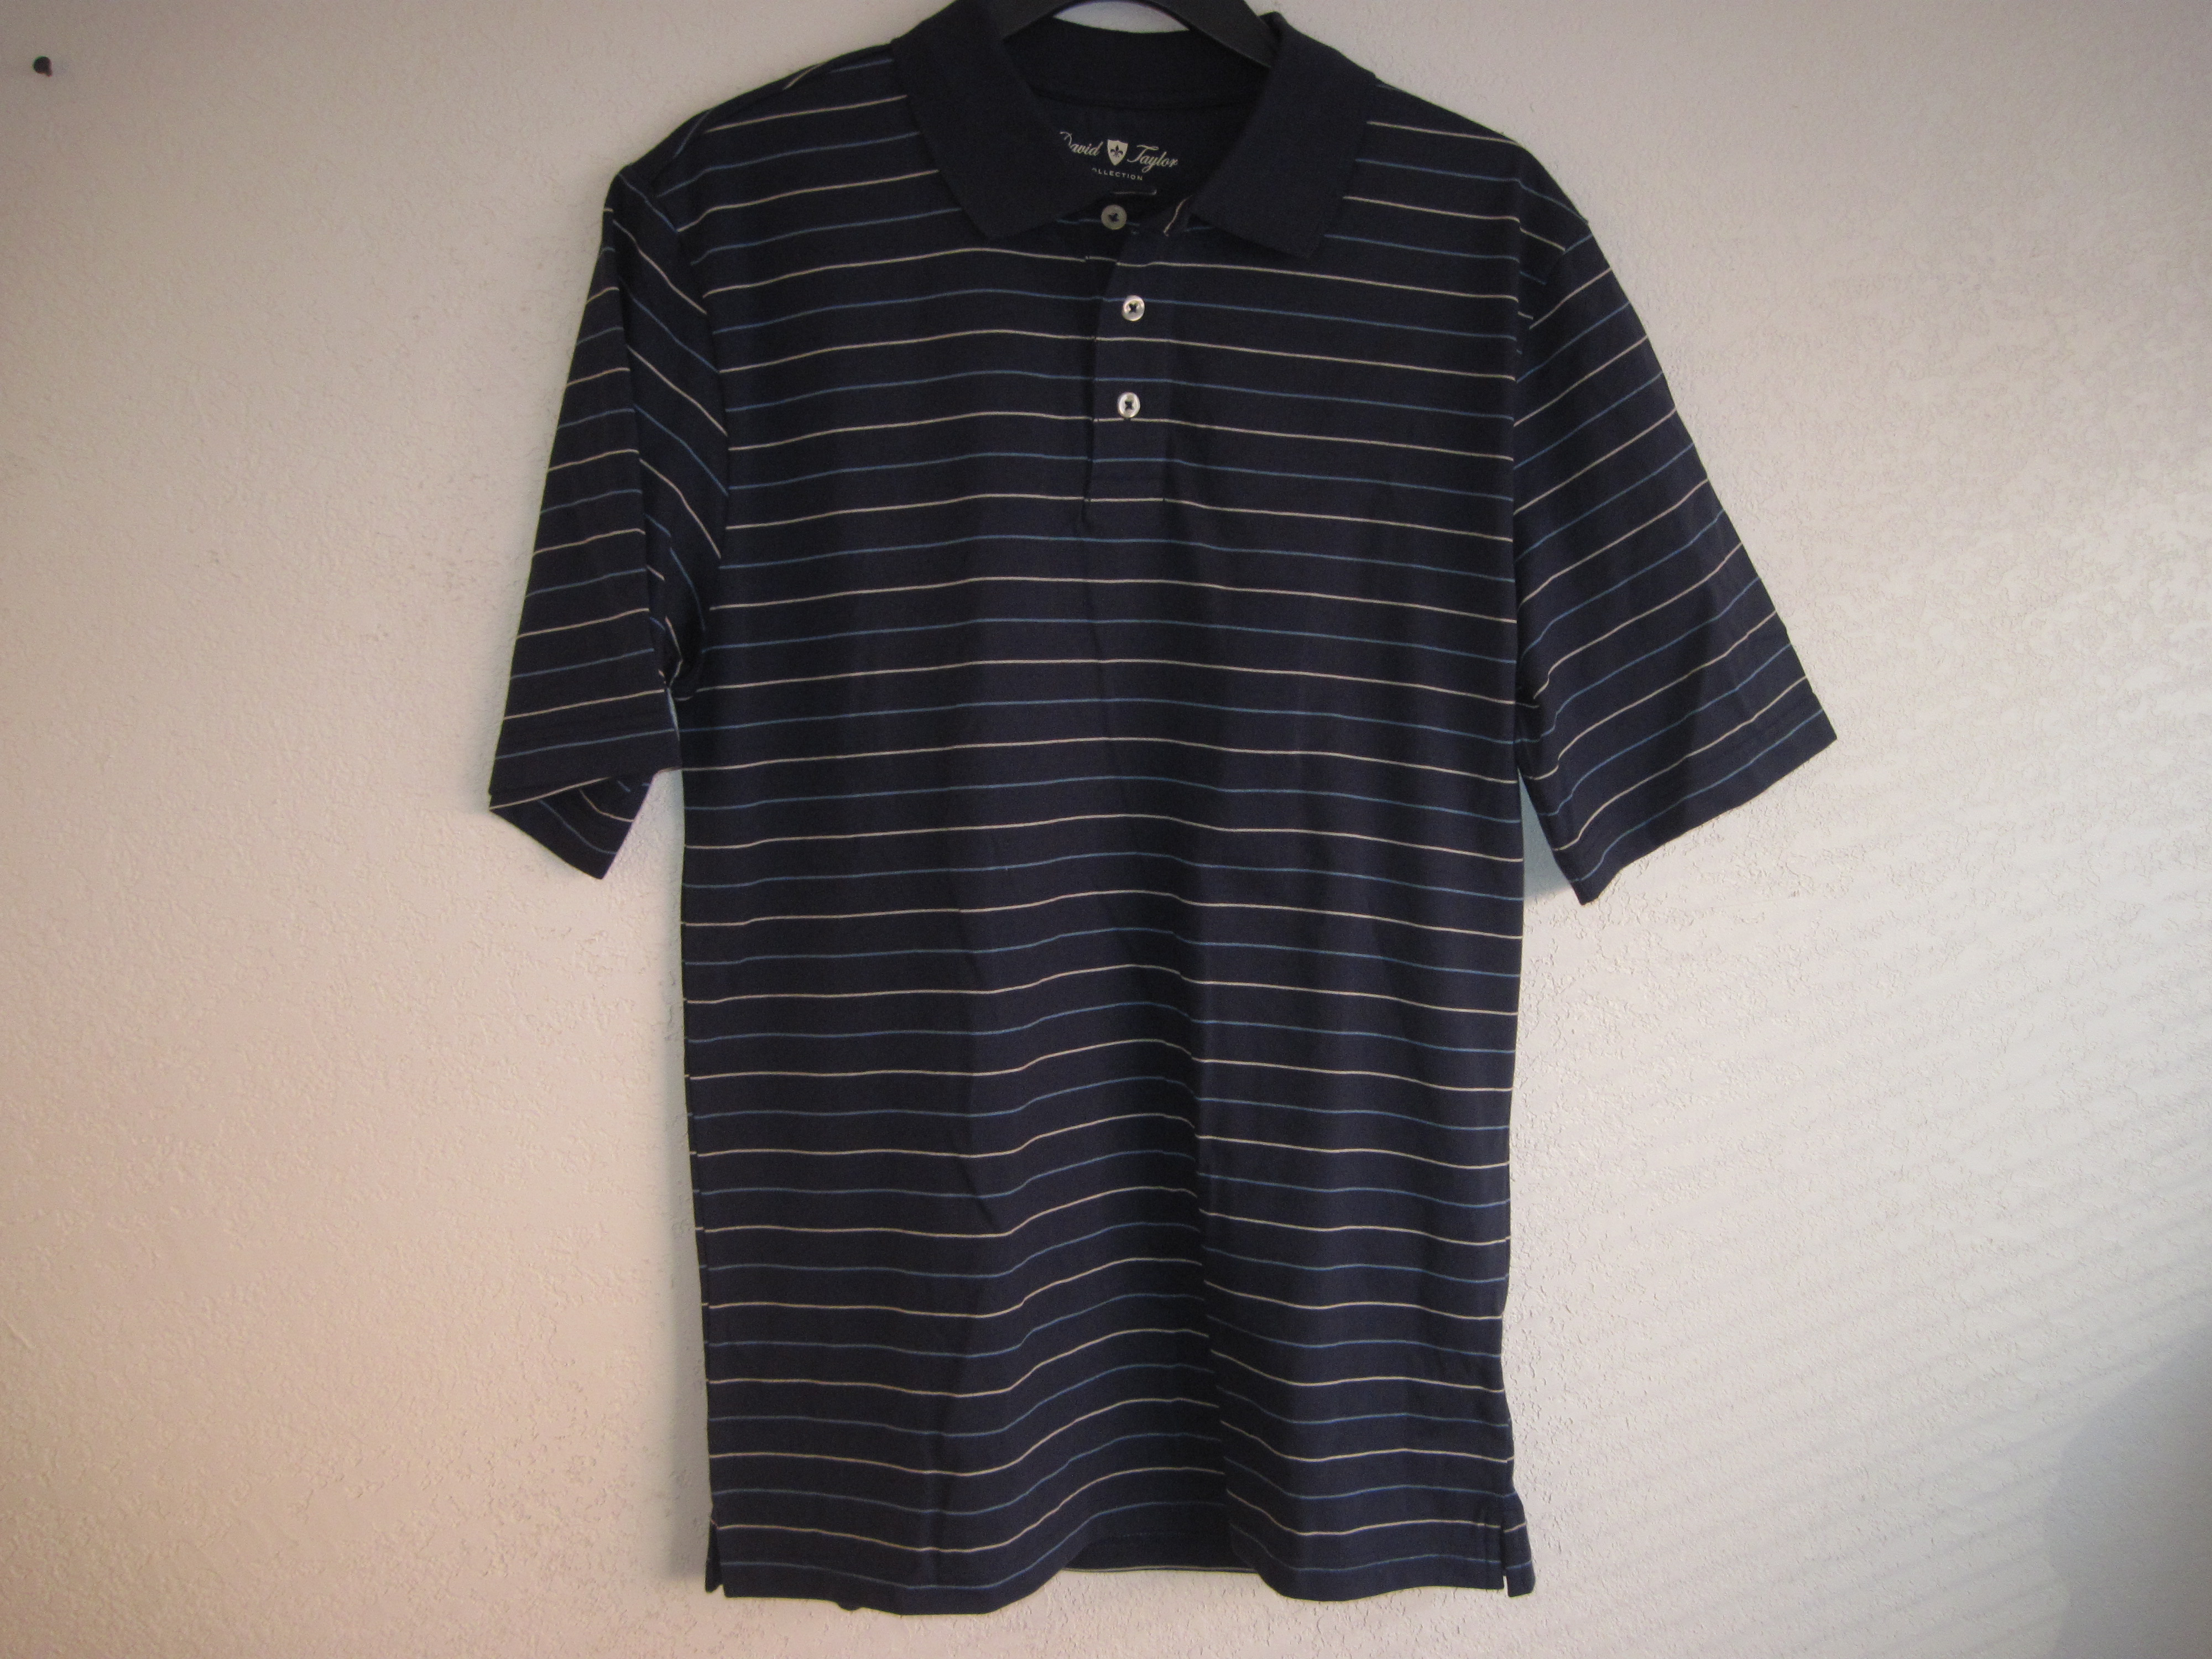 David Taylor Sz Small Neutral Polo Shirt ( dark blue & stripes)